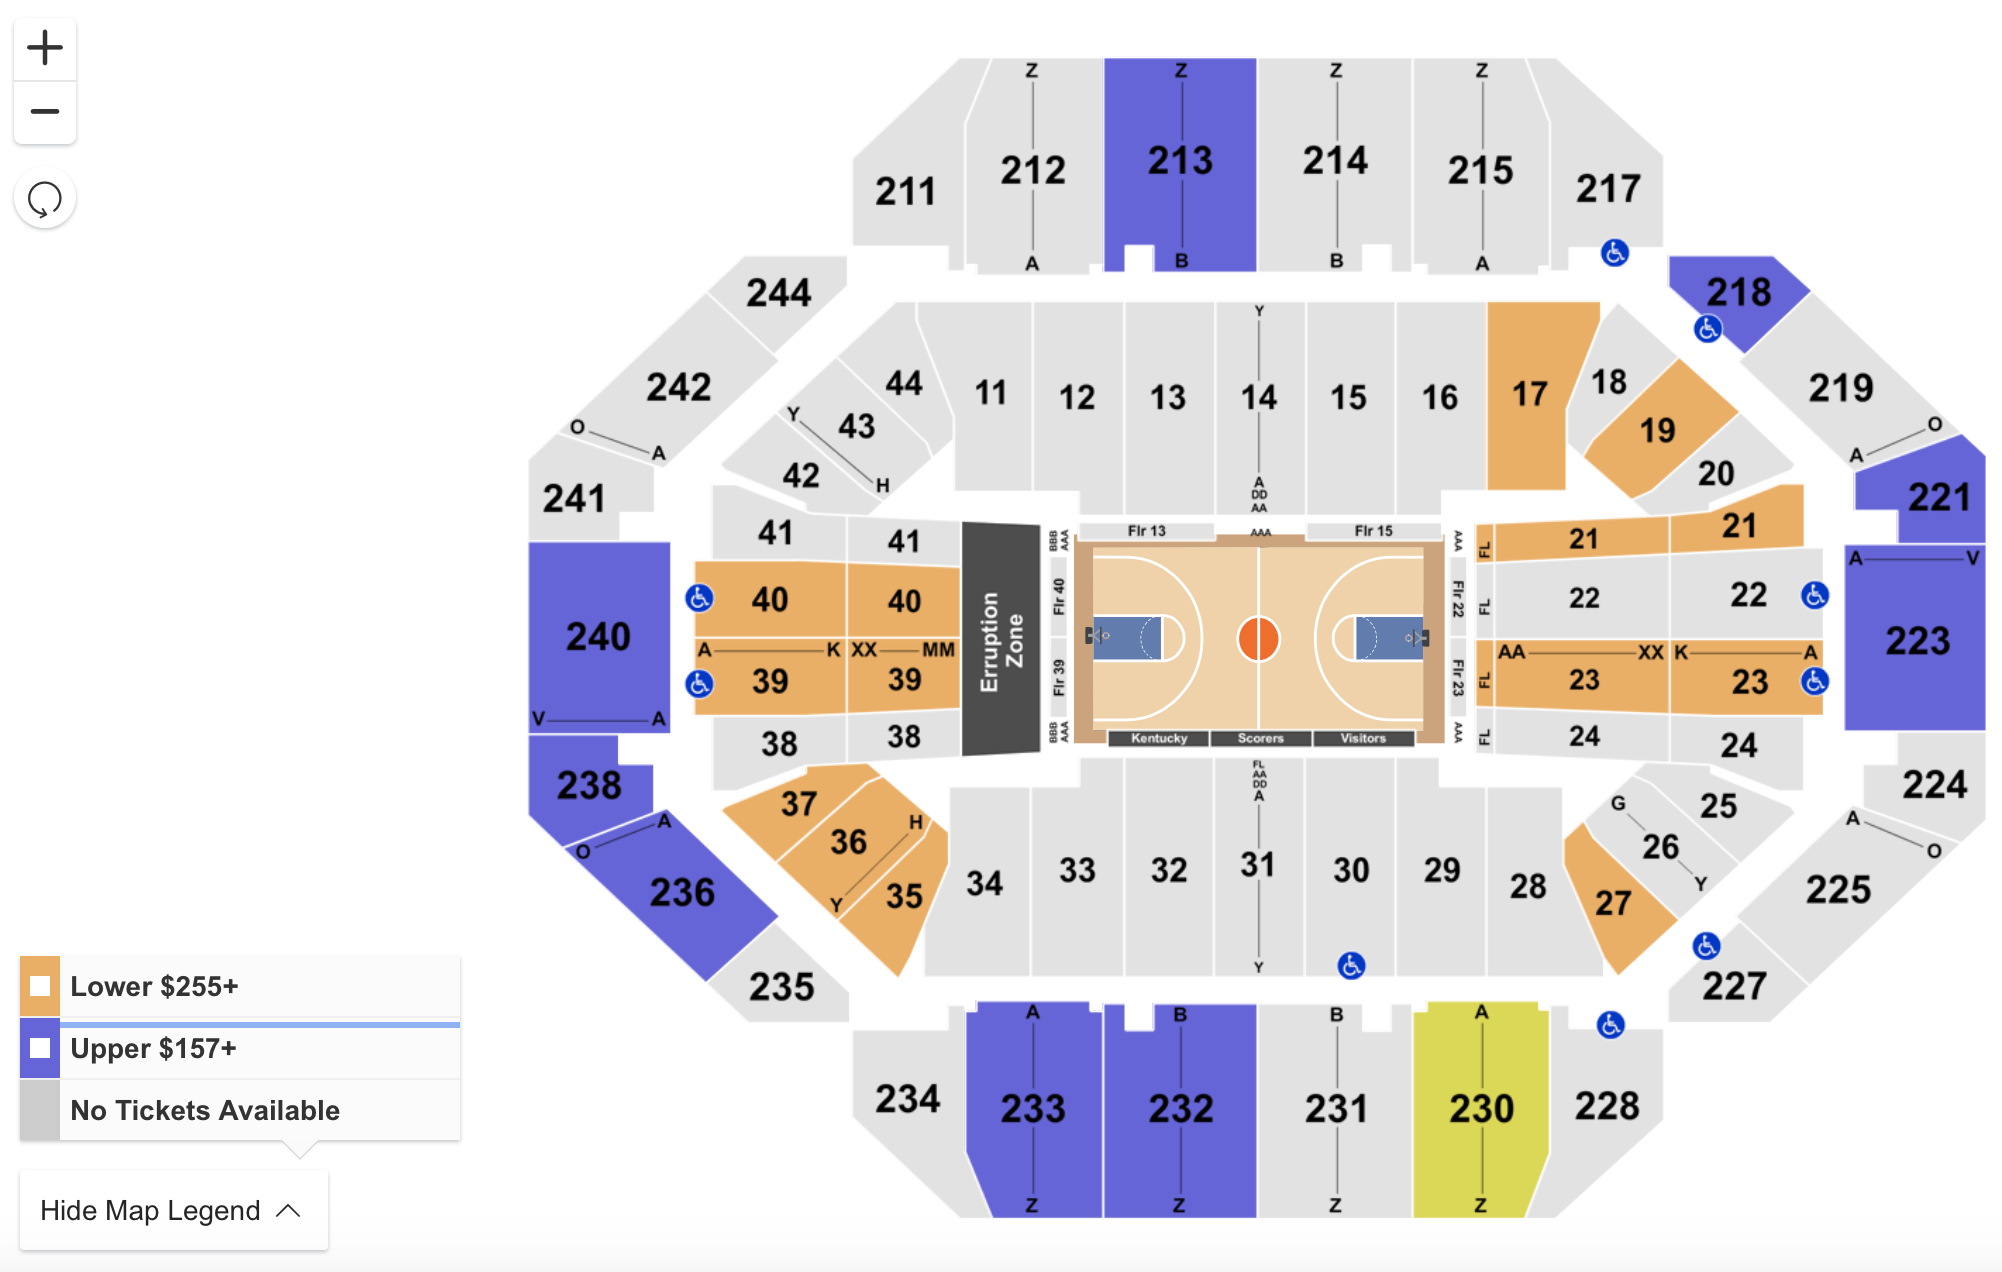 Where to Find The Cheapest Kentucky vs. Auburn Basketball Tickets on 2/29